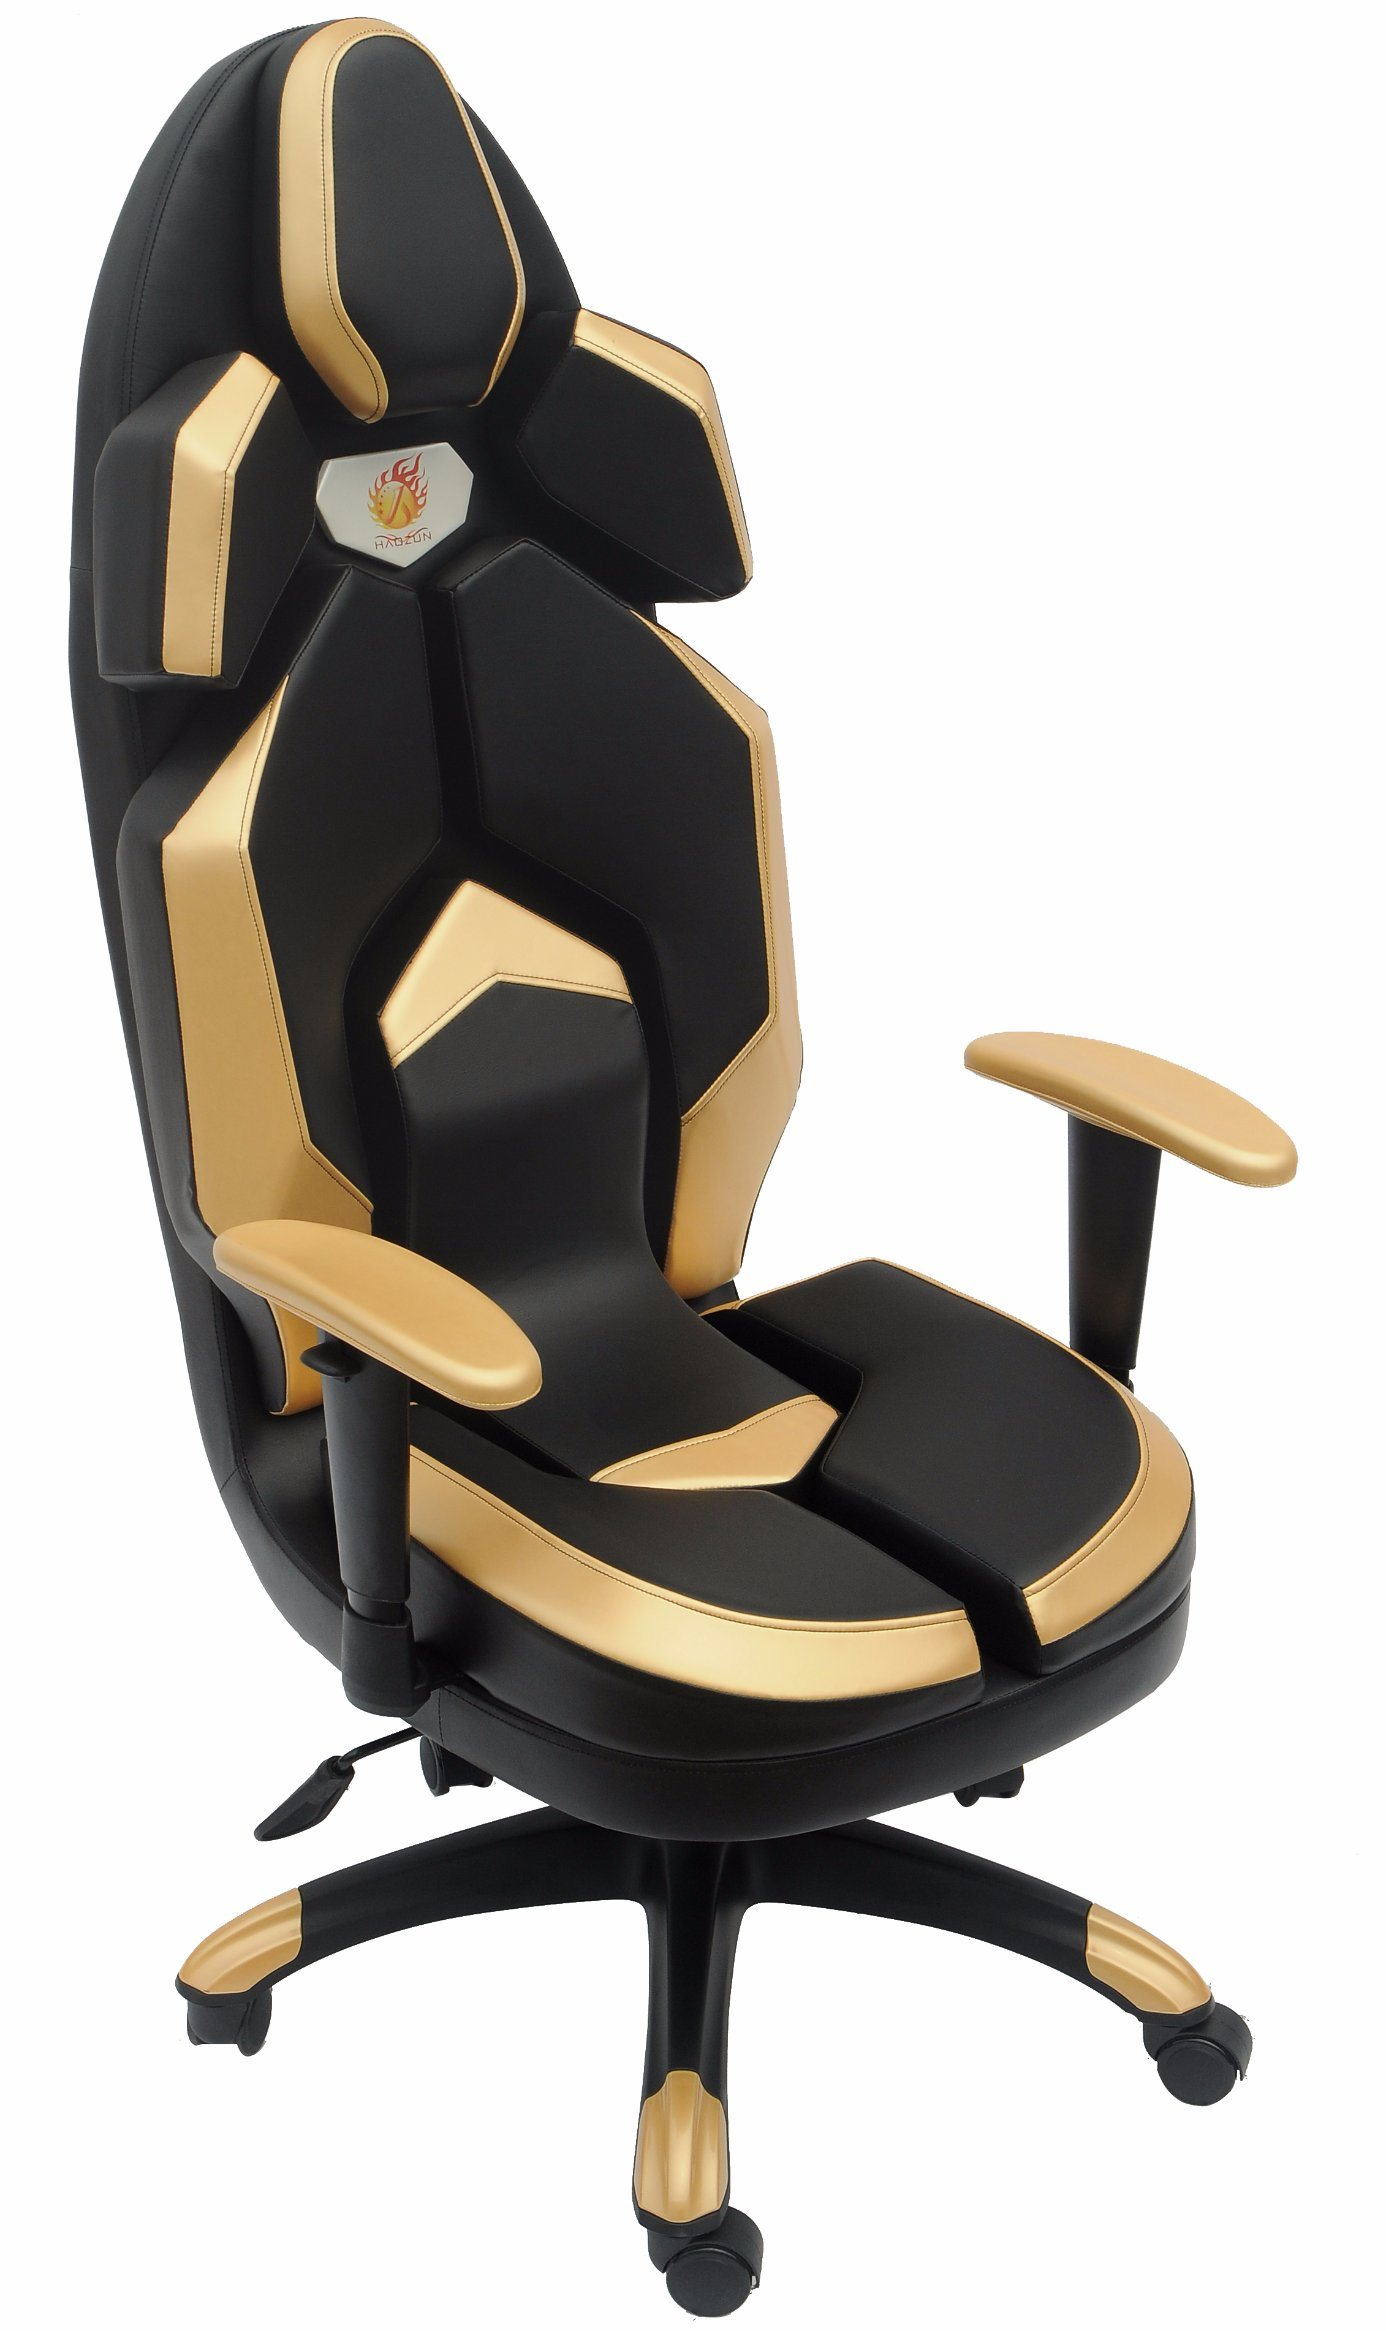 Golden Leather Racing Computer Chair Swivel Lift